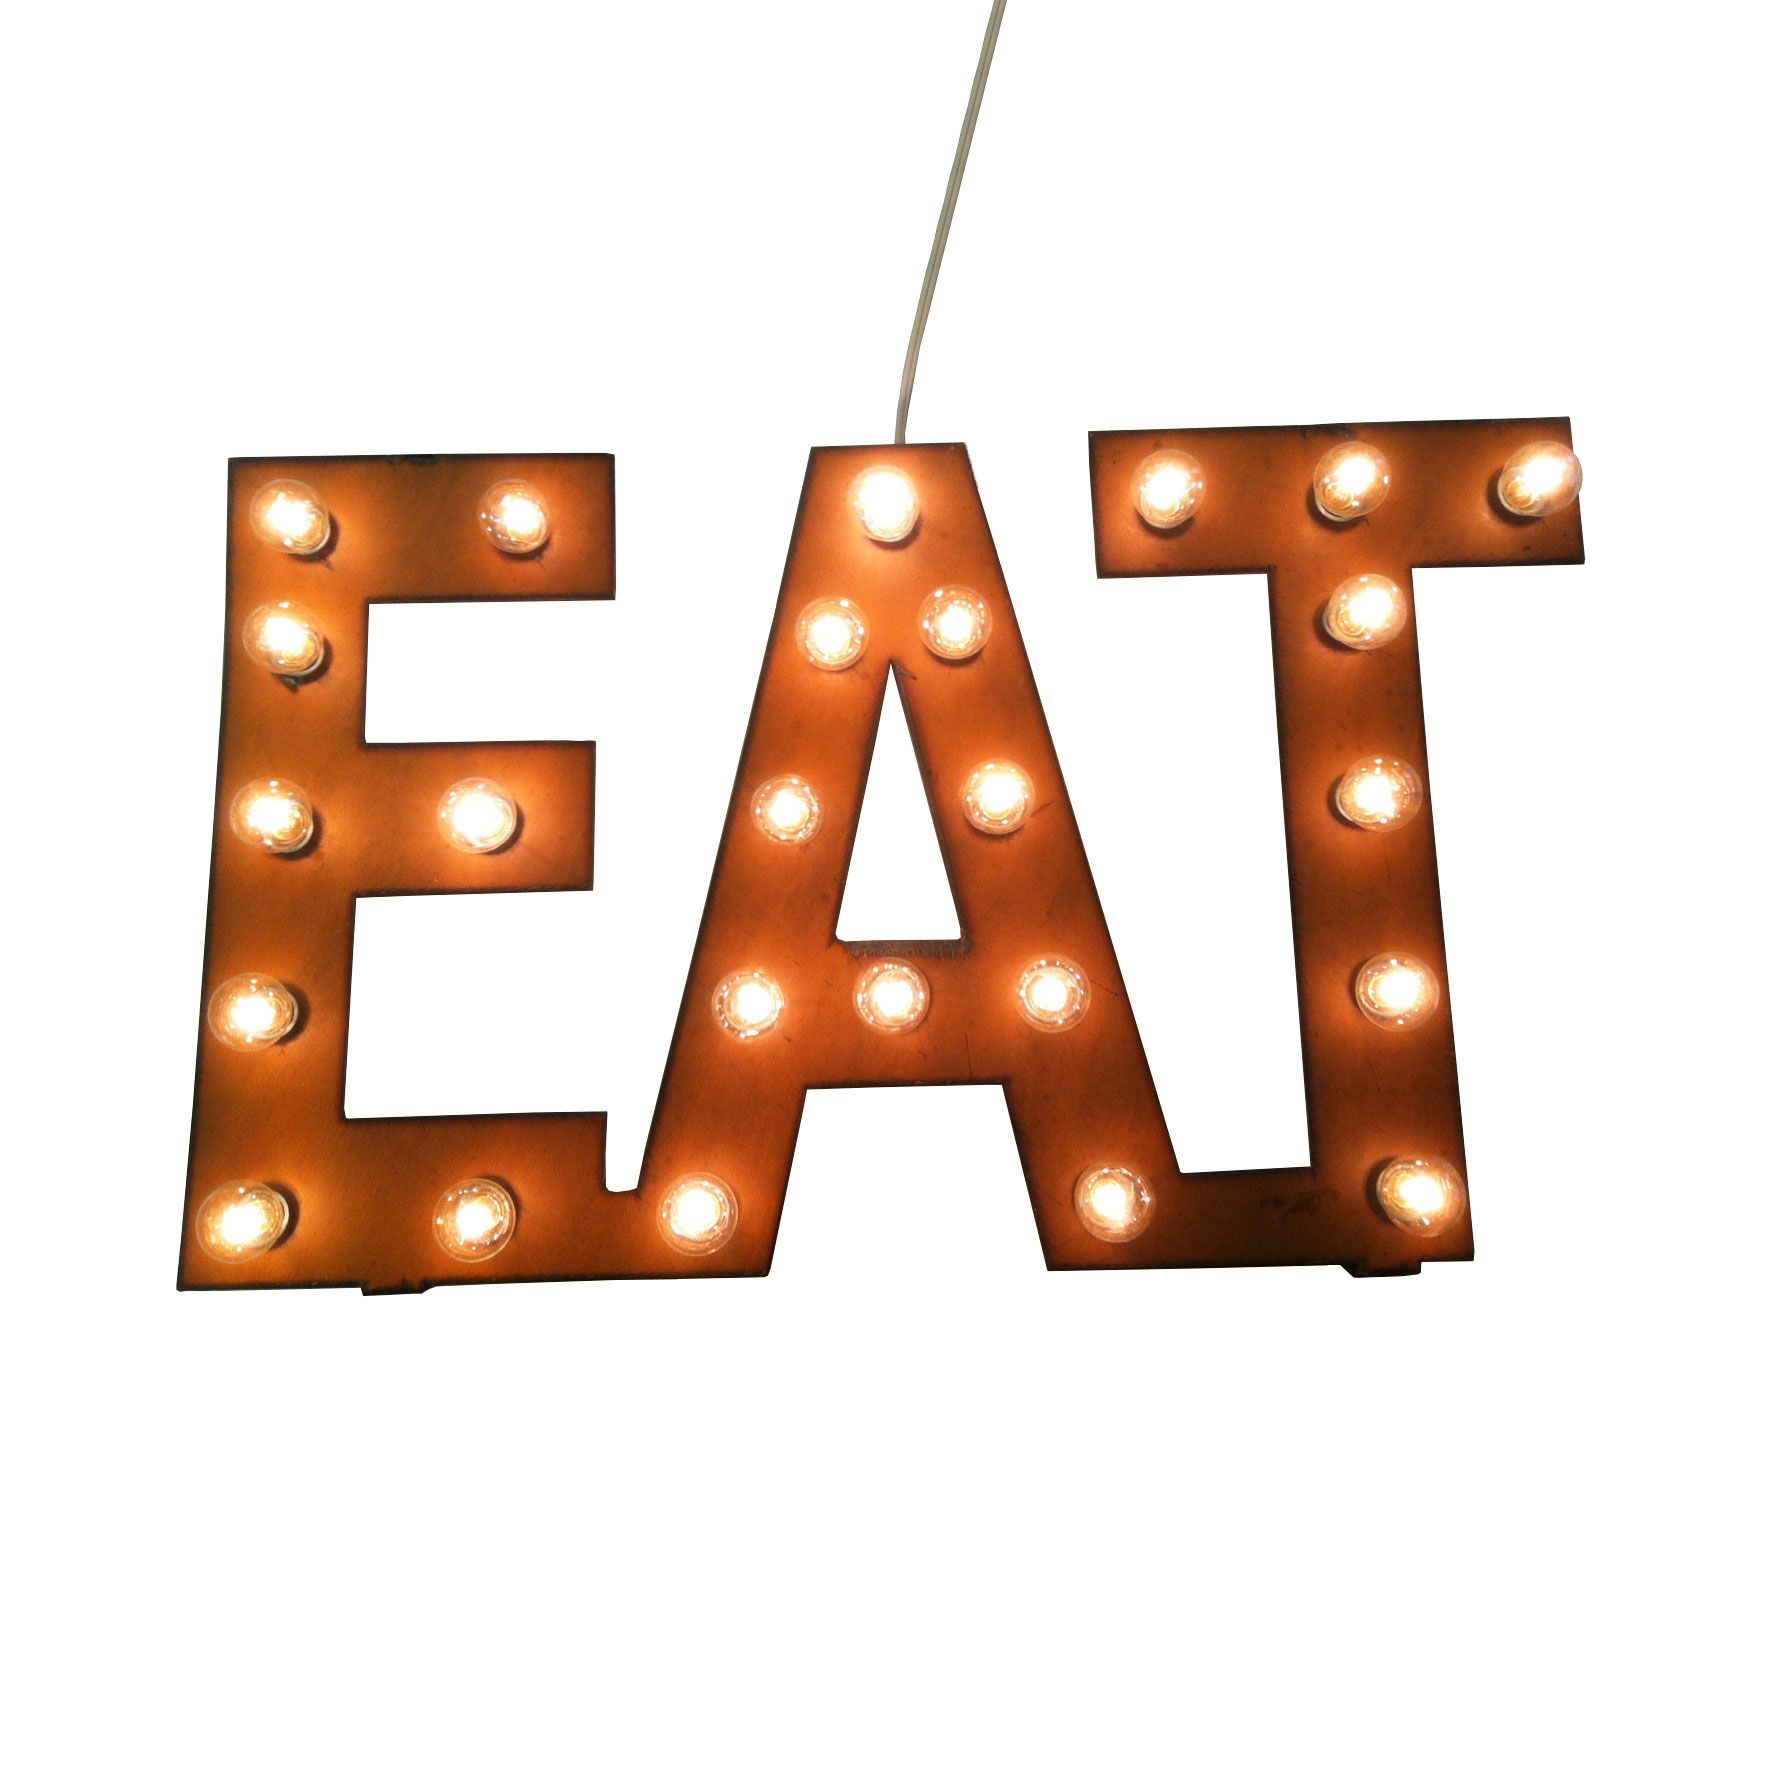 Eat Marquee Vintage-Style Sign | Sustenance | Pinterest | Vintage ...